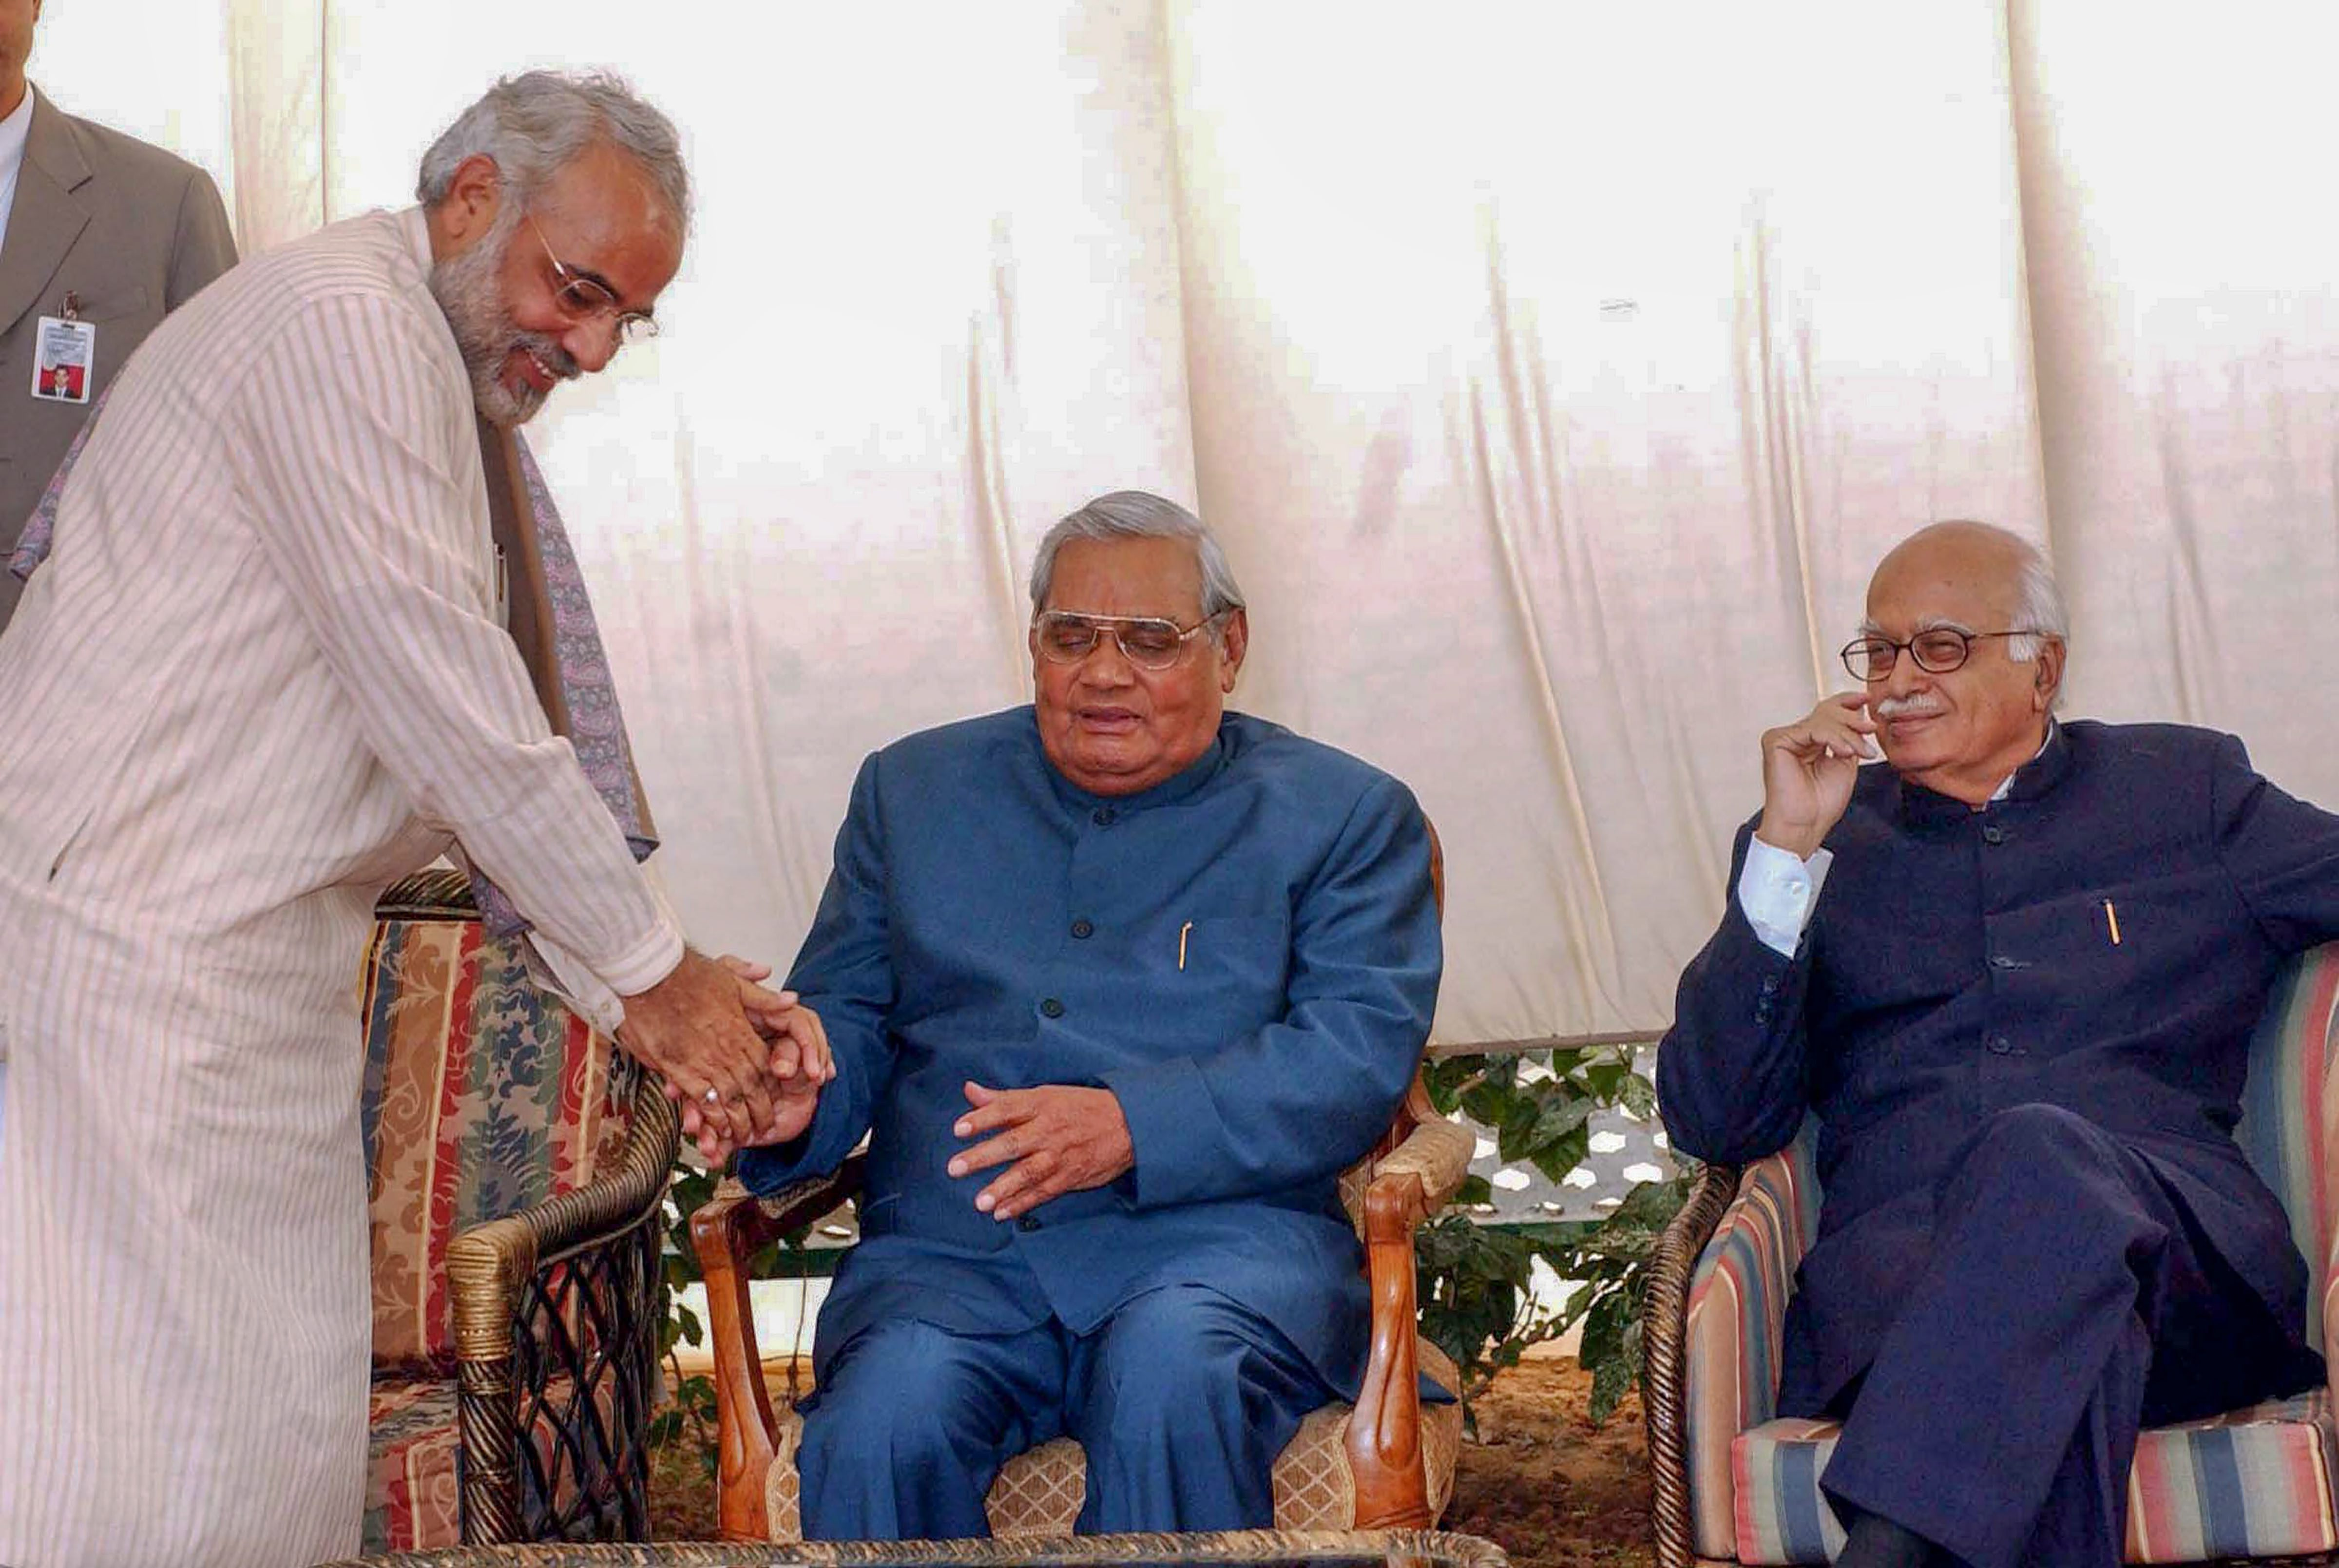 In this December 09, 2003, file photo former prime minister Atal Bihari Vajpayee is seen with the then Gujarat CM Narendra Modi and BJP senior leader LK Advani at a lunch in New Delhi. PTI